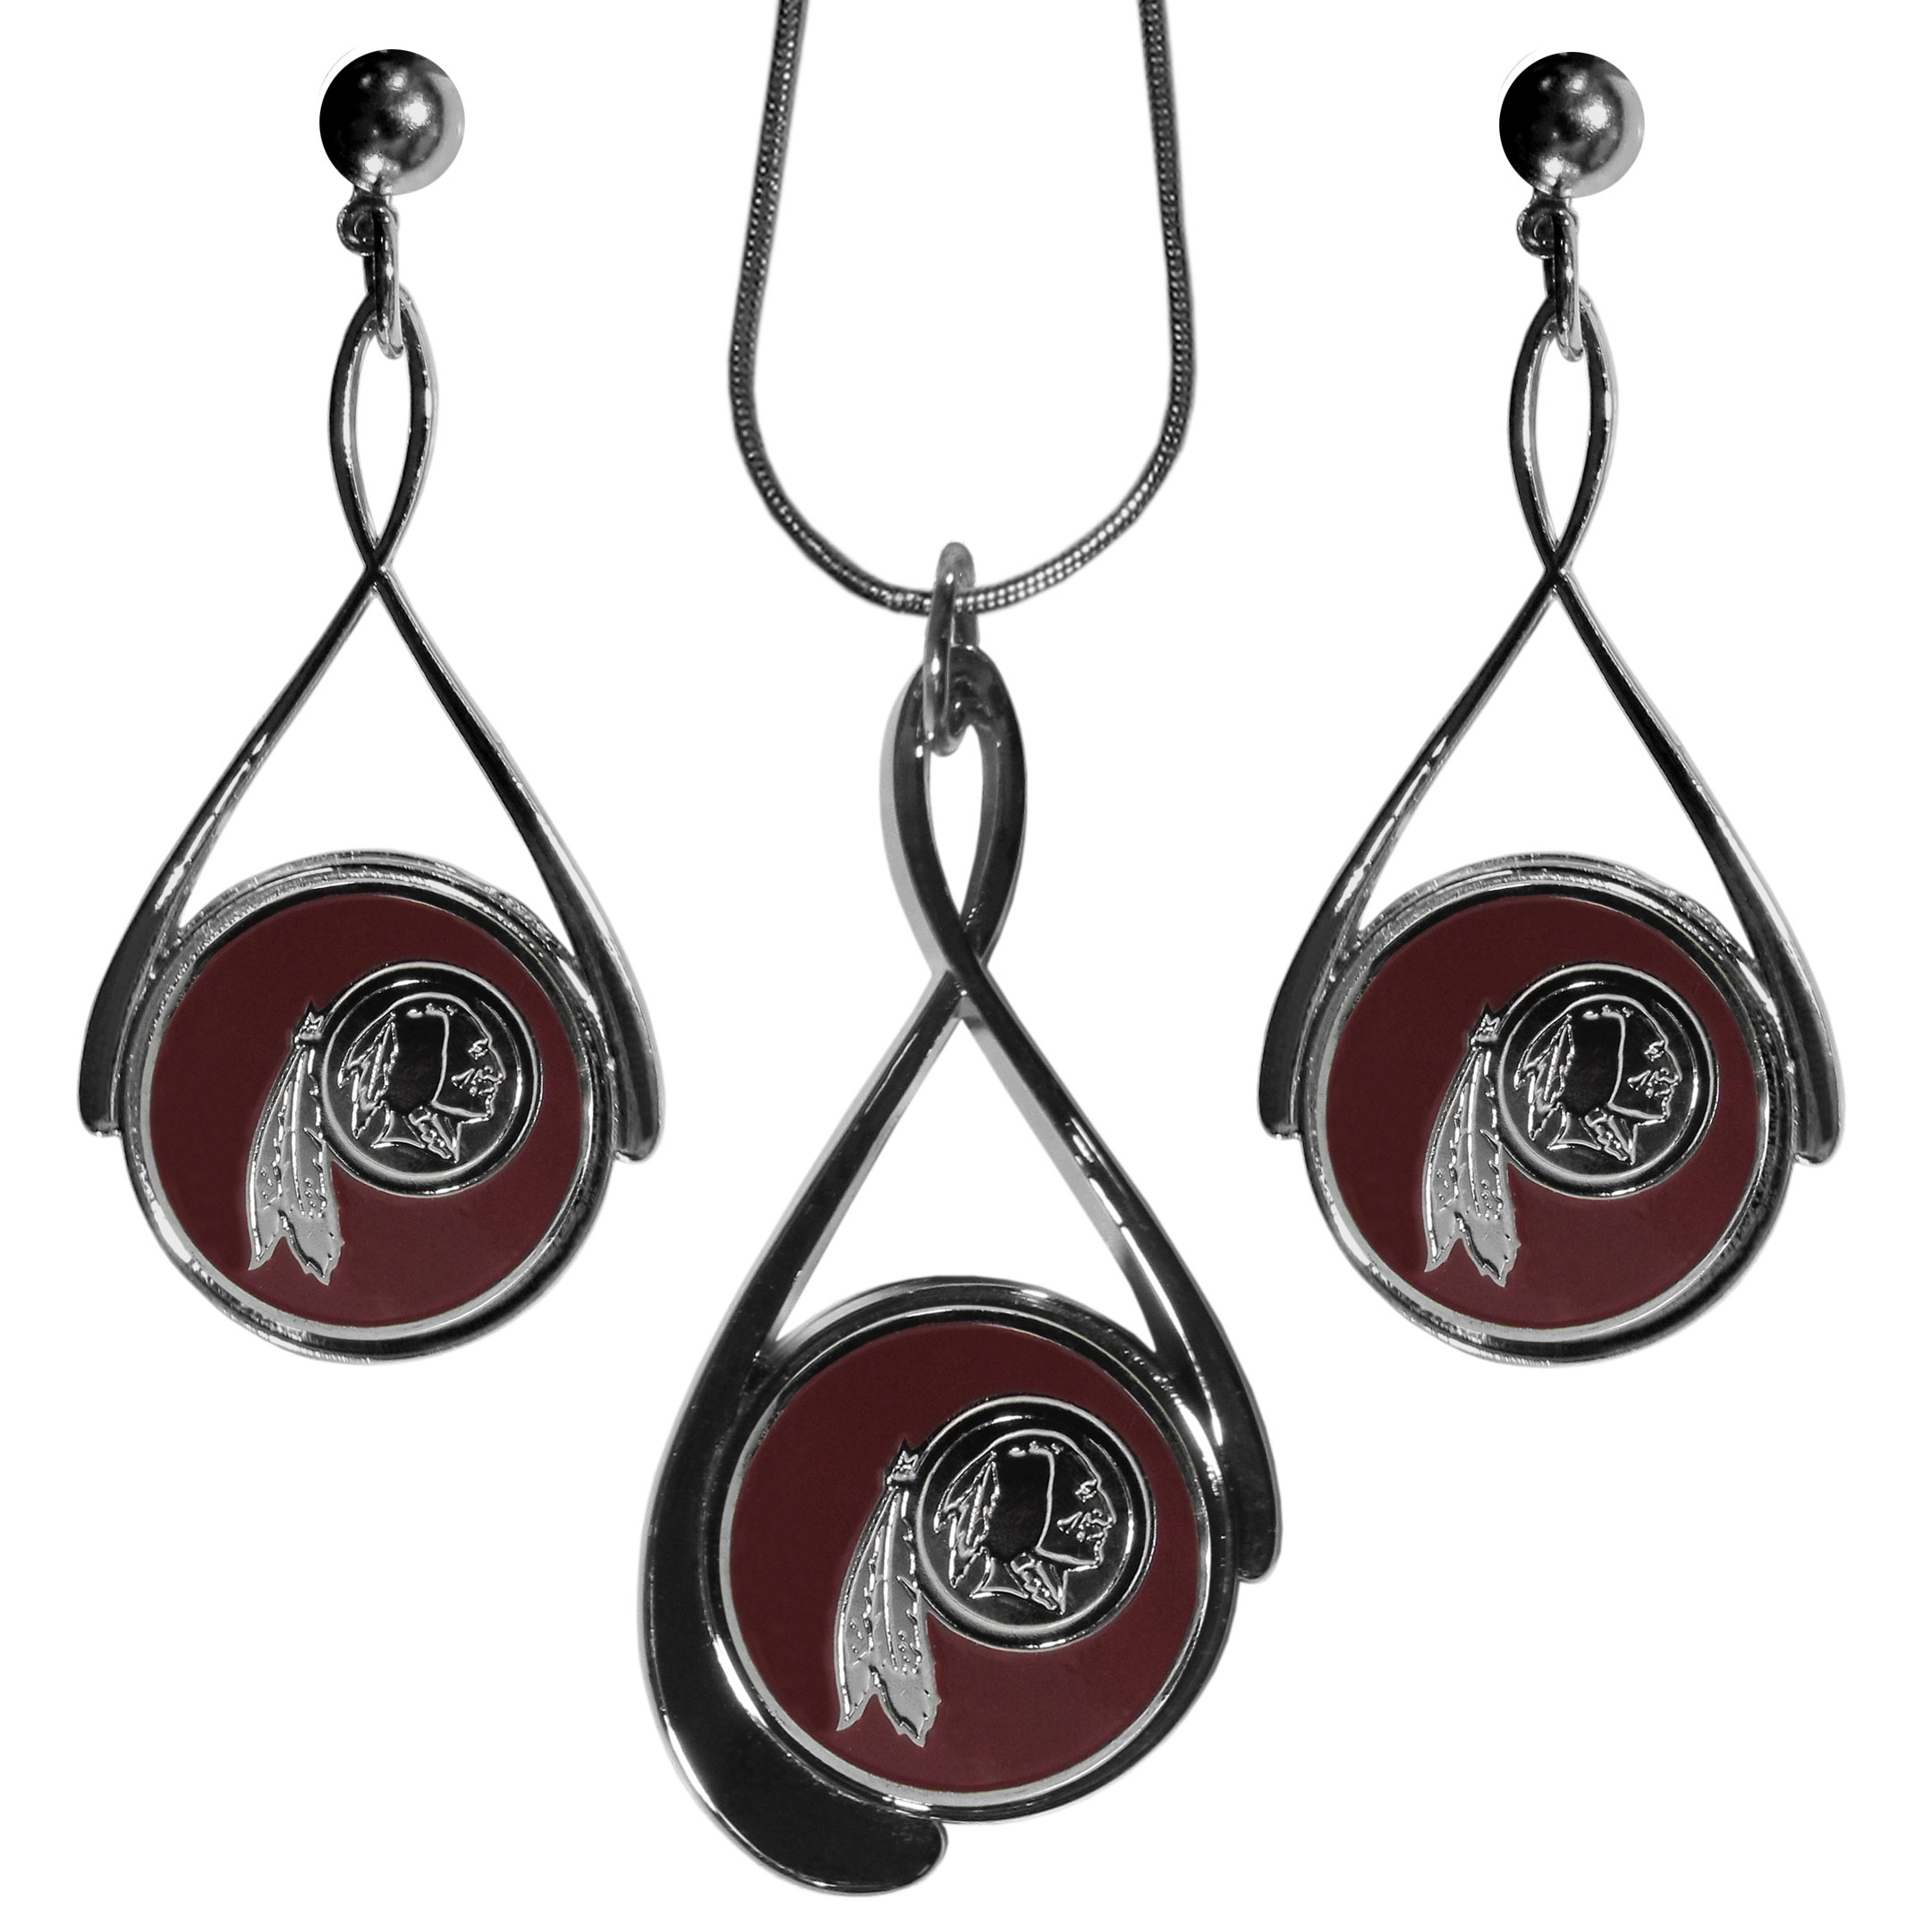 Washington Redskins Tear Drop Jewelry Set - Our Washington Redskins tear drop earrings and necklace set is a sporty twist on the classic tear drop style. The high polish dangle earrings feature the team logo in raised metal against the primary team color inset into the 2 inch tear drop setting paired with a beautiful matching necklace with a 18 inch snake chain with 2 inch extendor. The earrings have hypoallergenic stud posts.